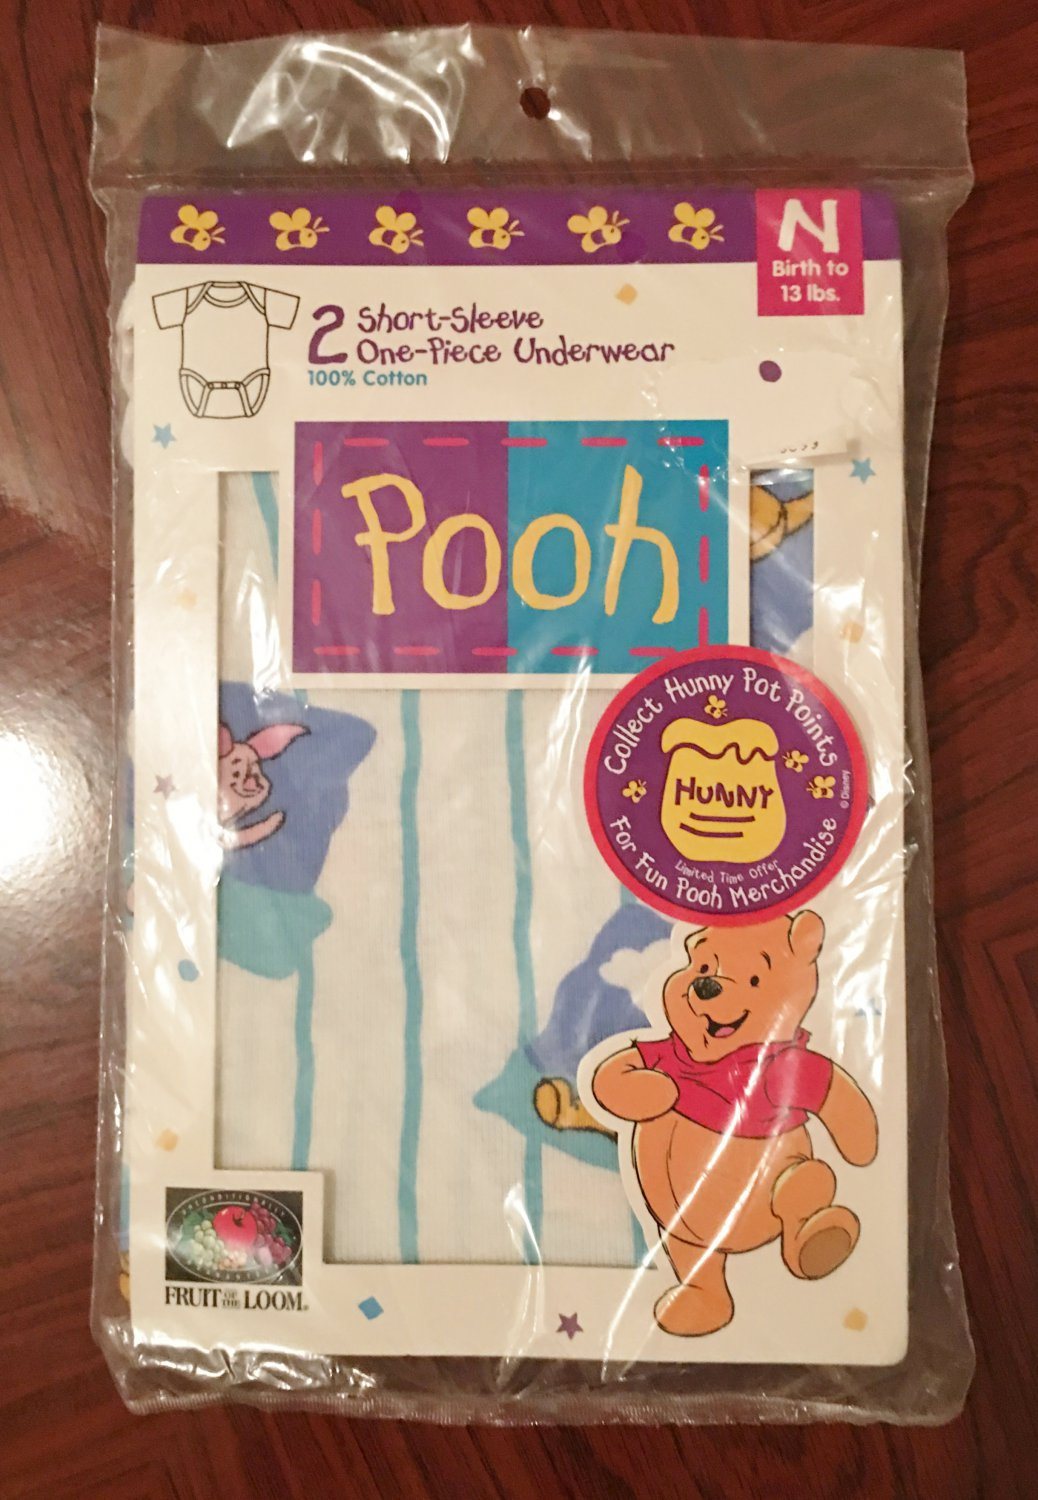 NWT Baby WINNIE the POOH Infant SLIP ON SHIRTS NEWBORN (0-13 lbs) 100% Cotton 2 PACK